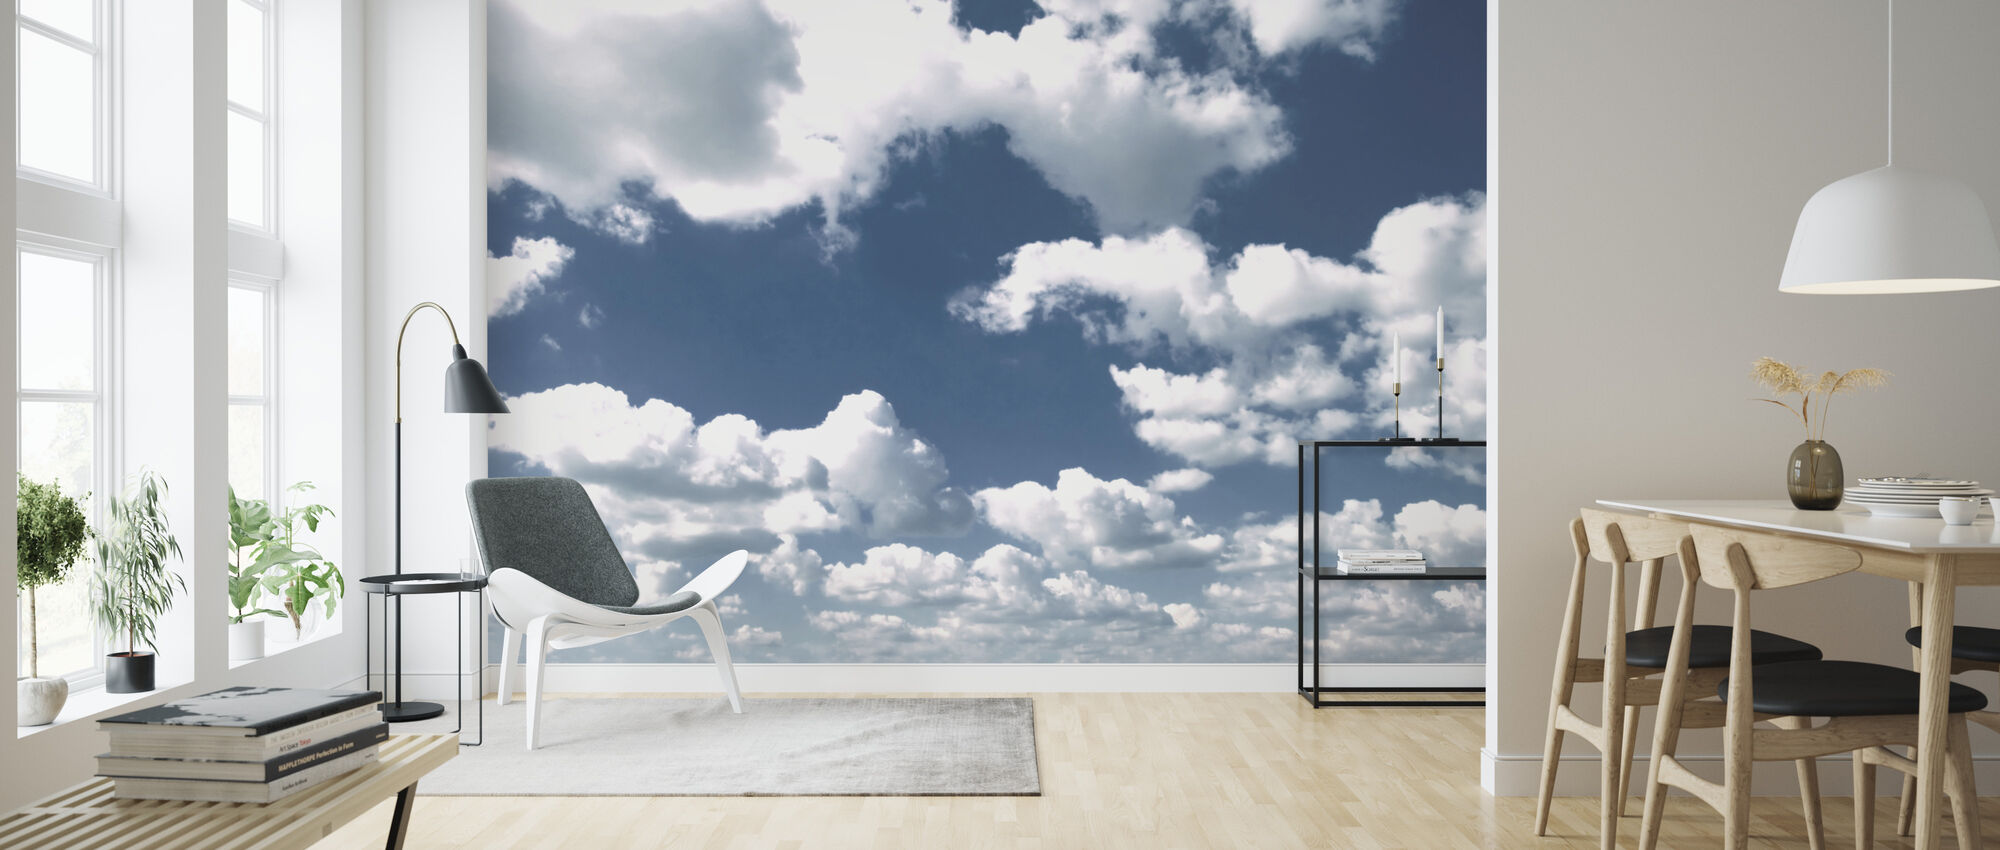 Clouds - Wallpaper - Living Room